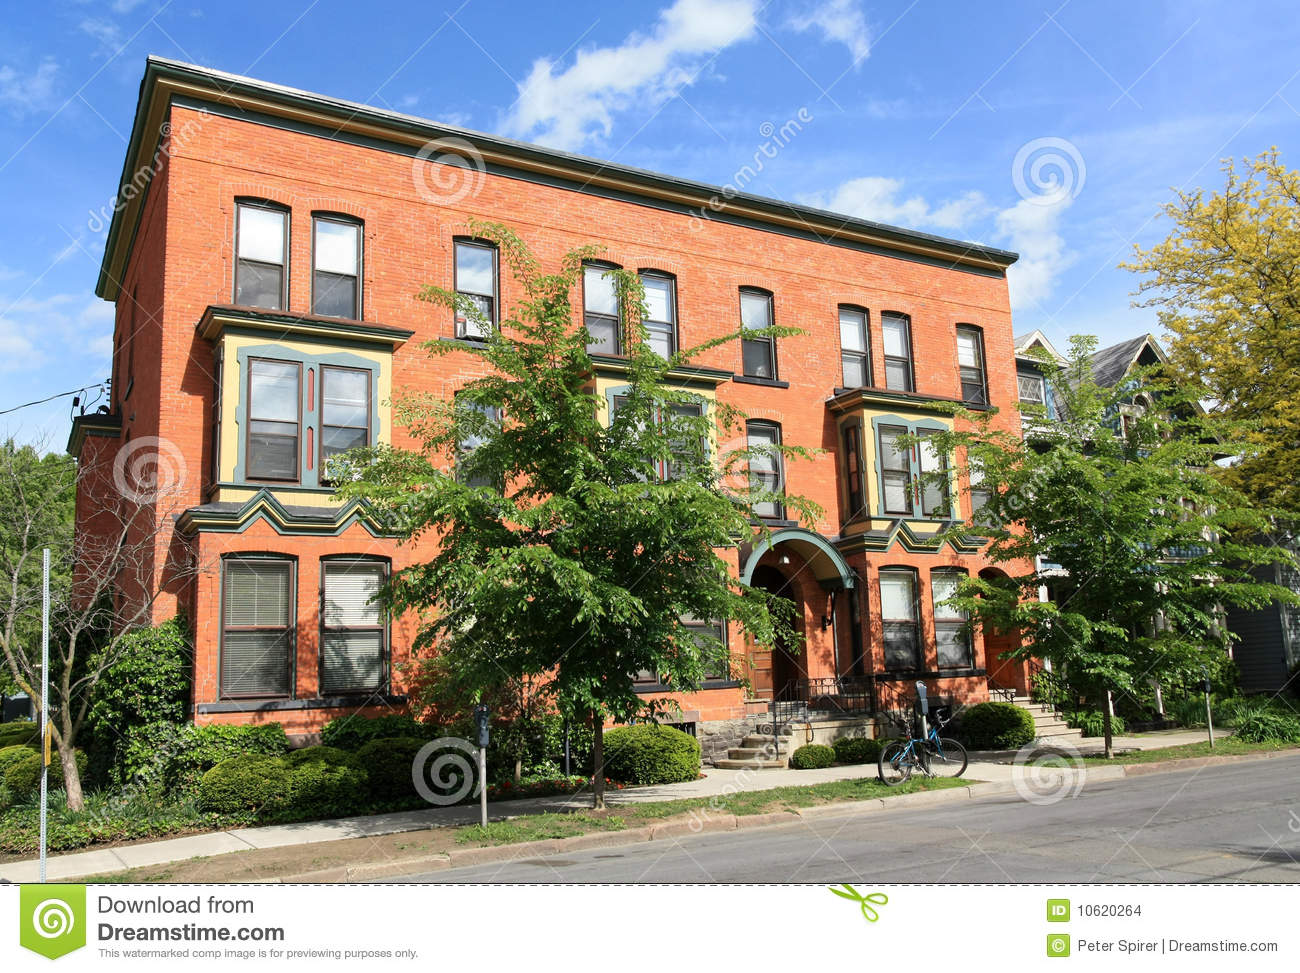 Old Fashioned Apartment Building Stock Photo   Image Of Street, Brick:  10620264